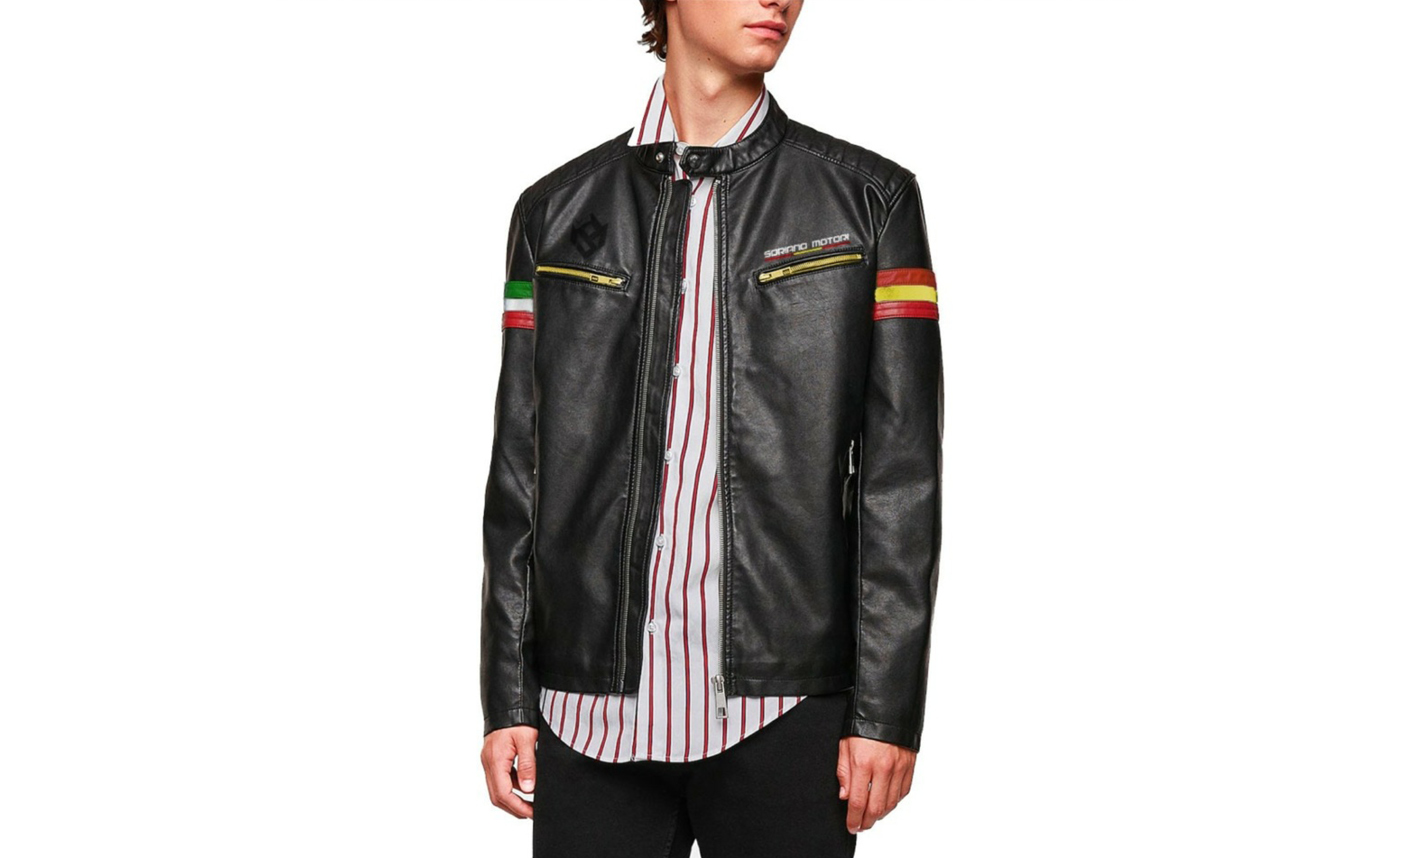 Soriano has also launched a collection of sleek clothing and helmets, including this leather jacket